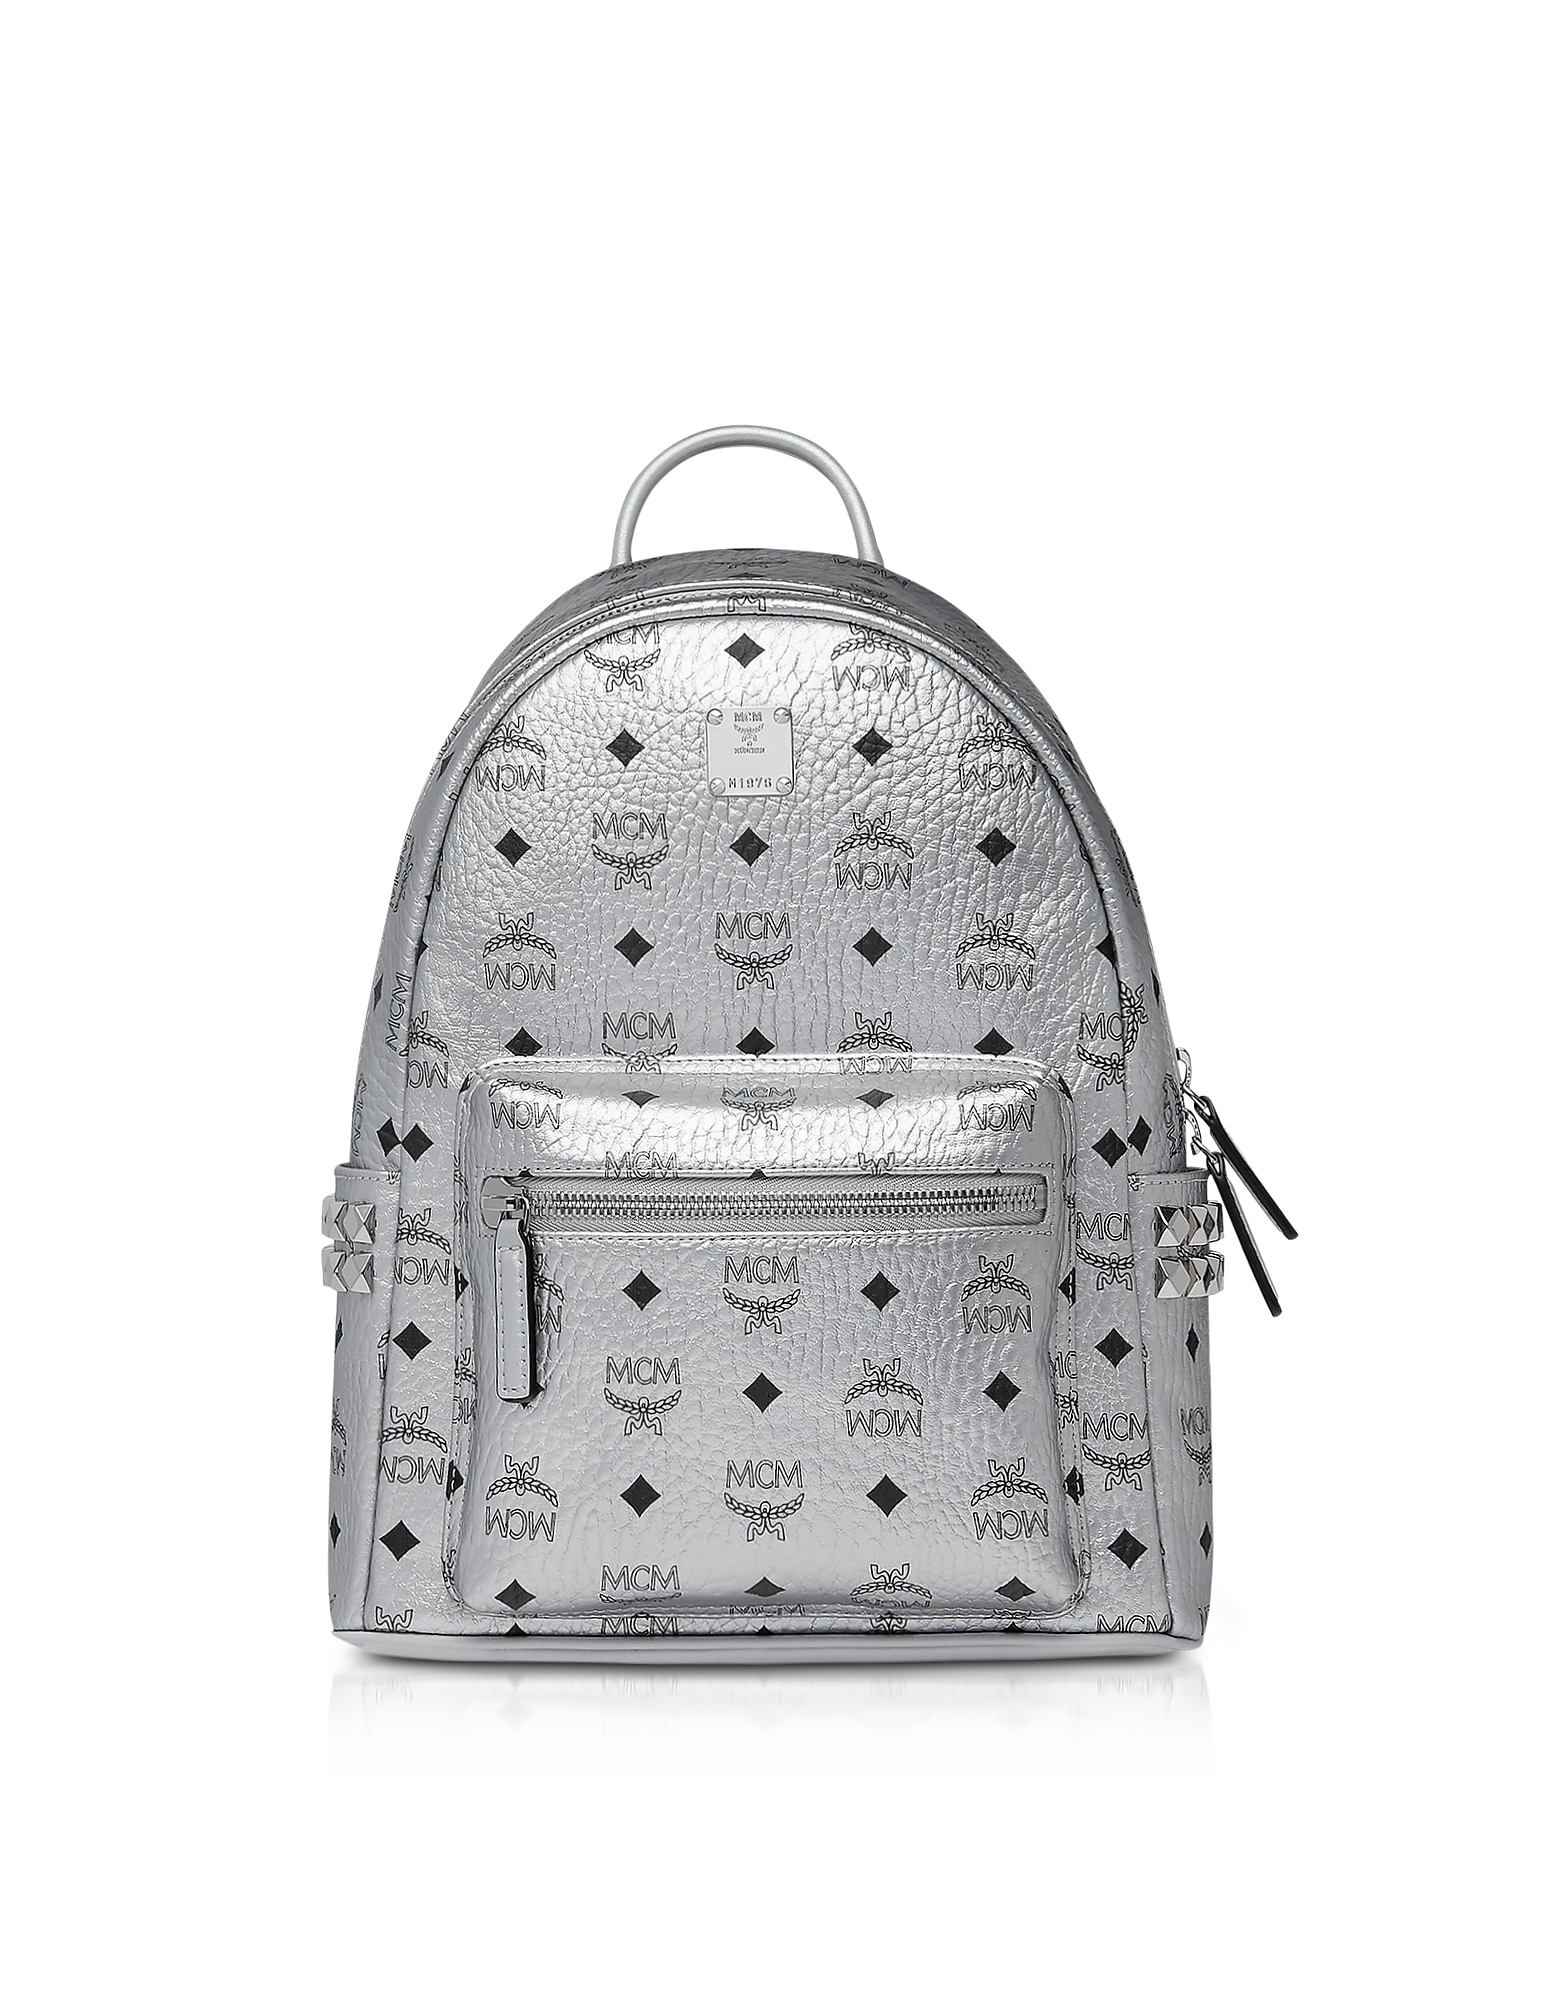 Berlin Silver Side Studs Visetos Stark Backpack 32